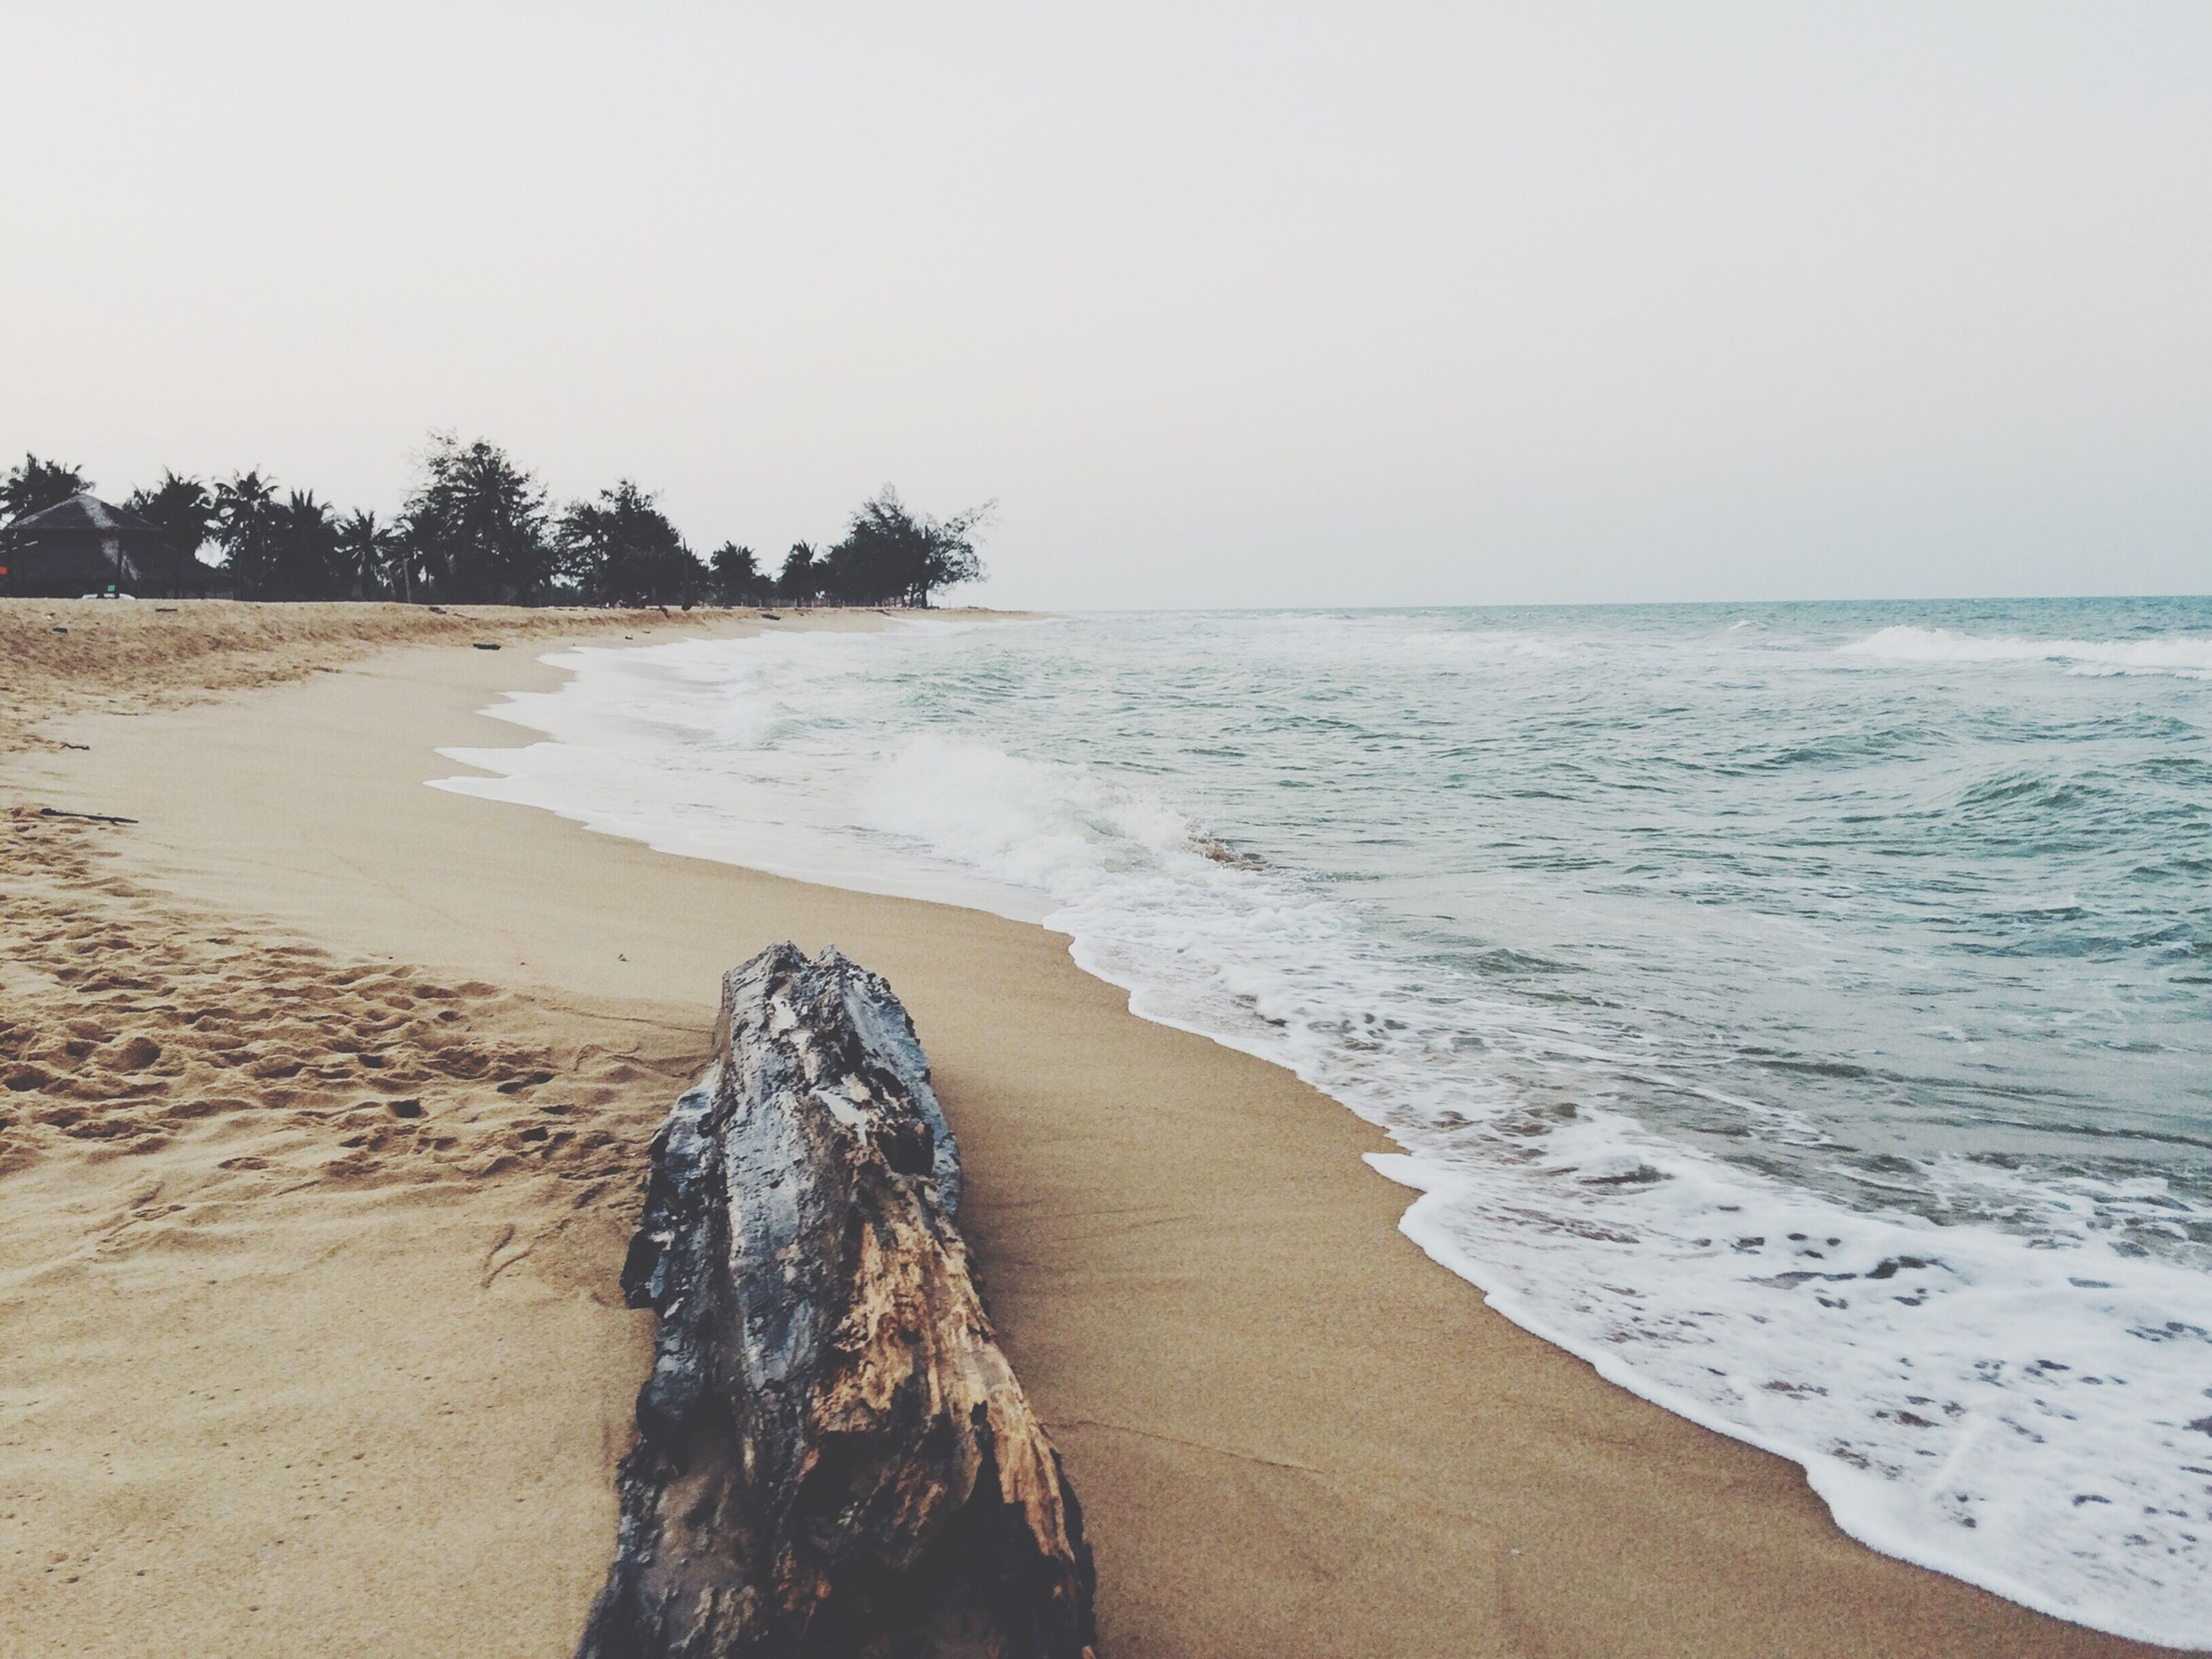 beach, sea, sand, horizon over water, shore, water, clear sky, tranquil scene, tranquility, scenics, beauty in nature, copy space, nature, wave, coastline, surf, idyllic, sky, remote, outdoors